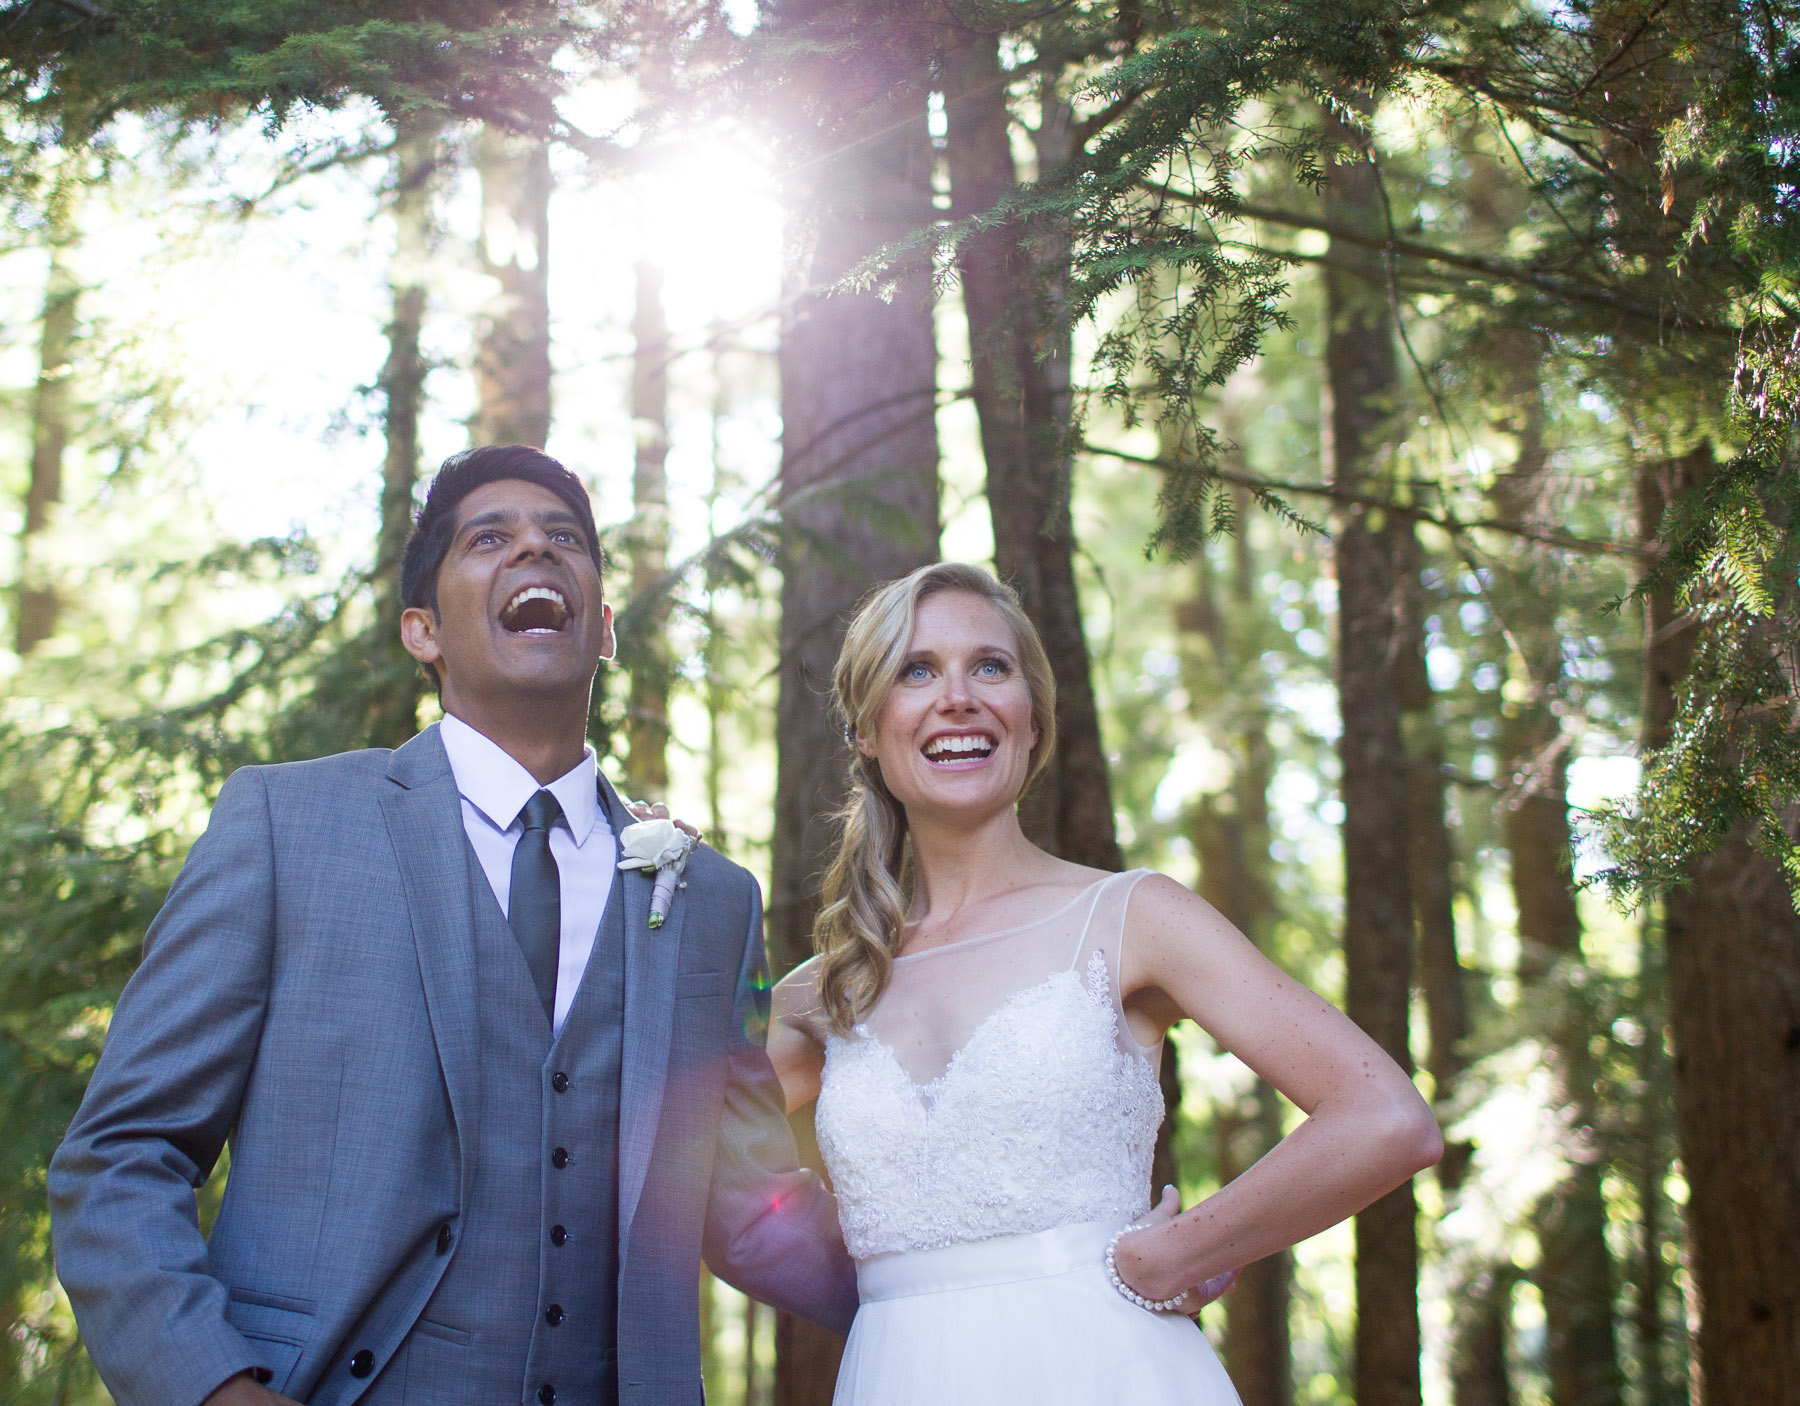 bride and groom natural forest sunlight happiness celebration wedding